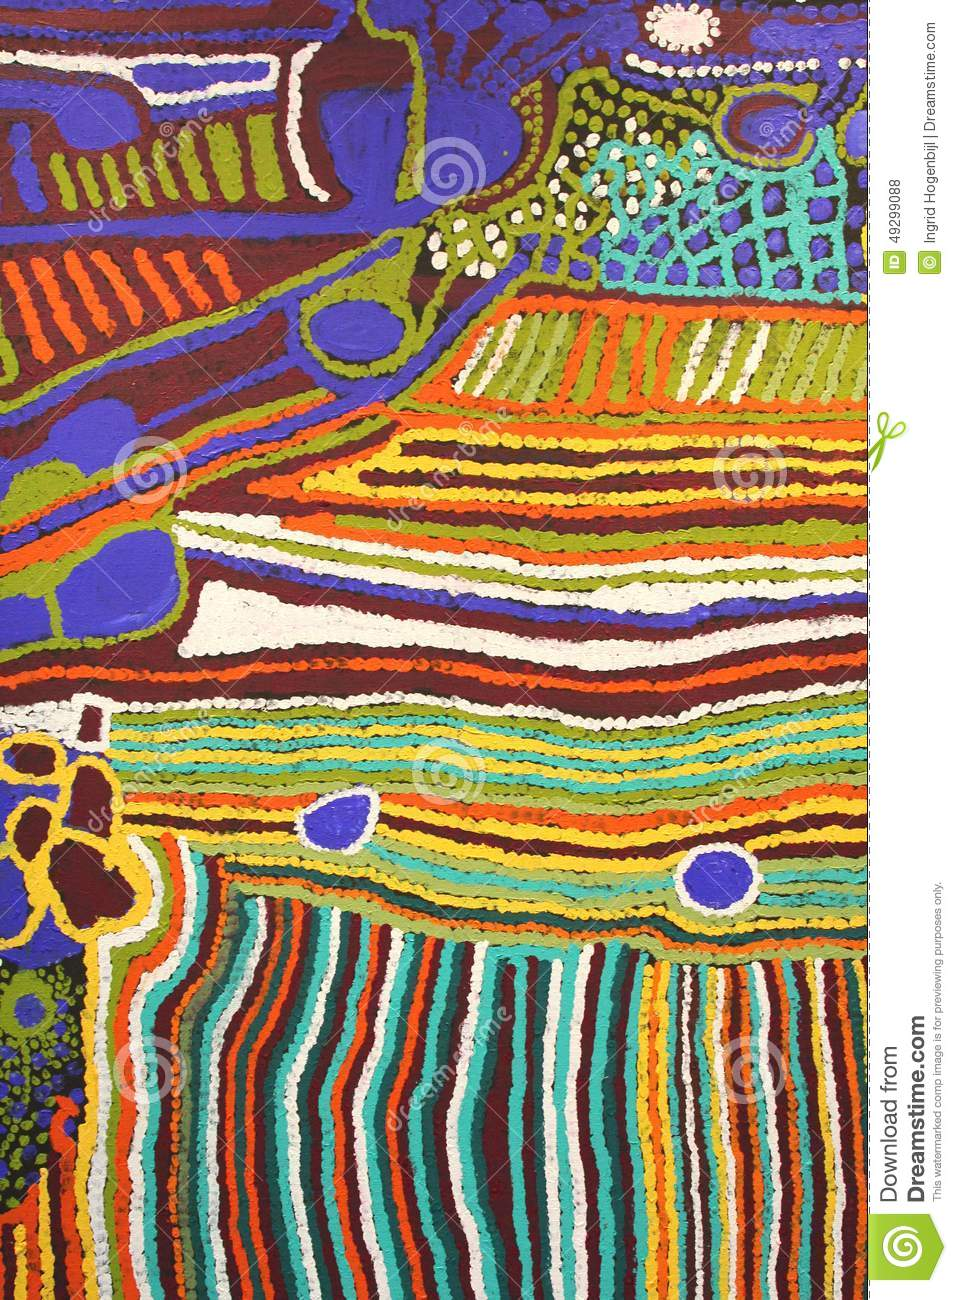 Part of a modern colorful Aboriginal artwork, Australia